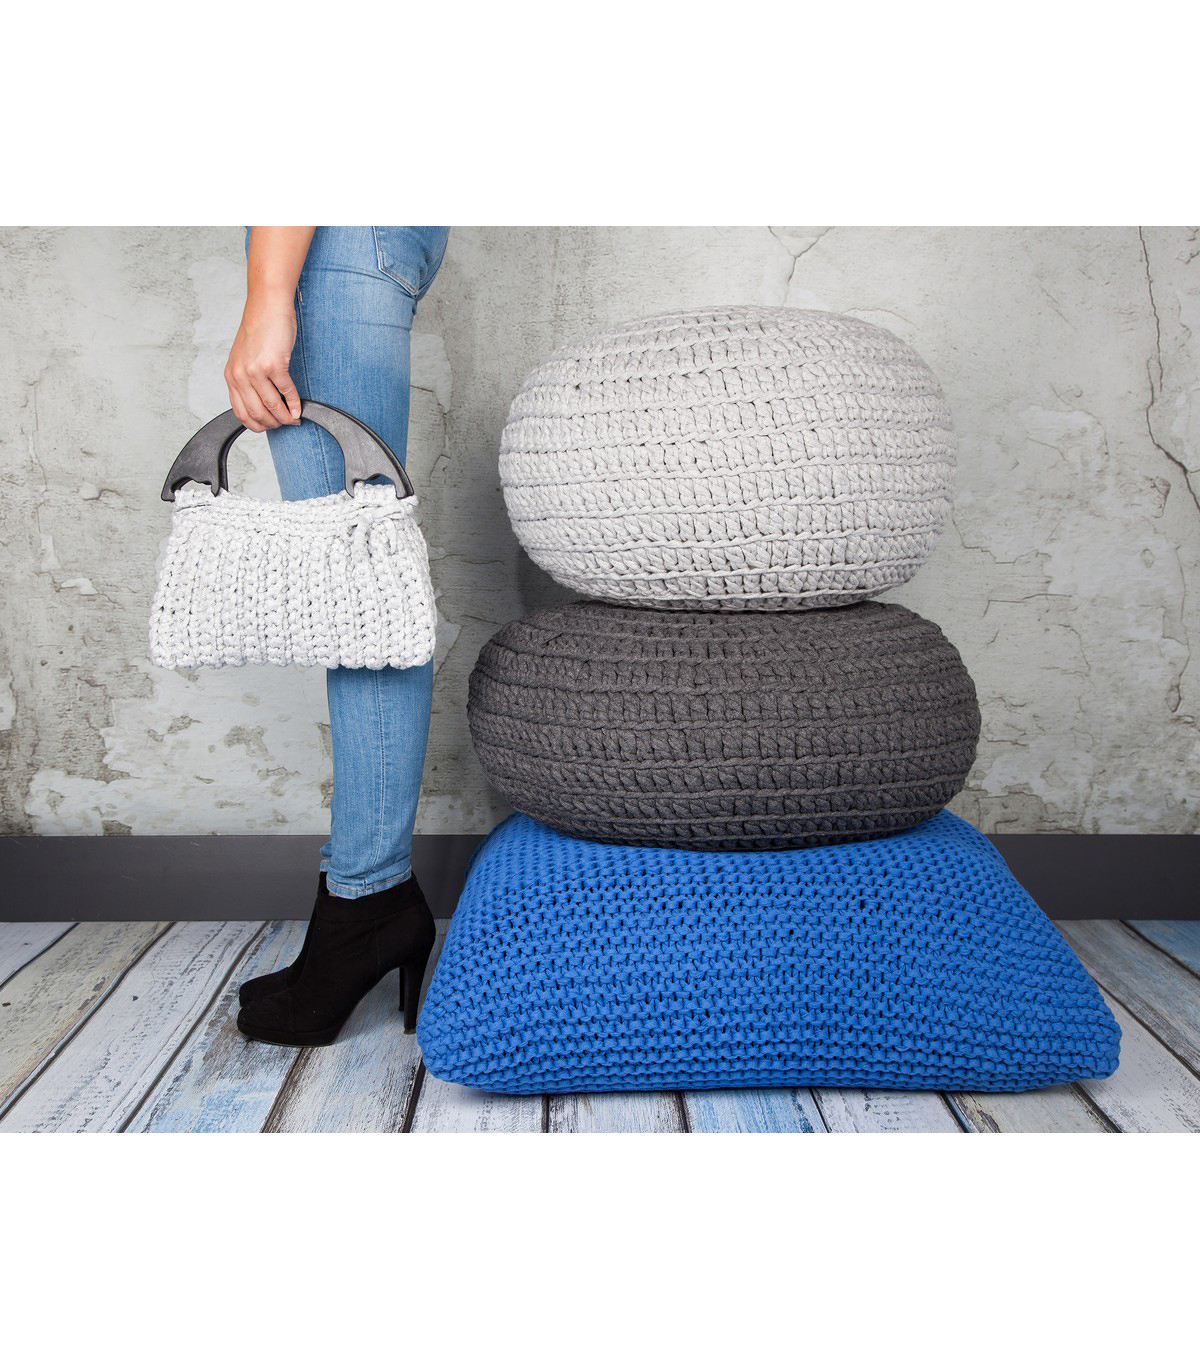 Hoooked Knit & Crochet Pouf Kit with Zpagetti Yarn-Sailor Blue